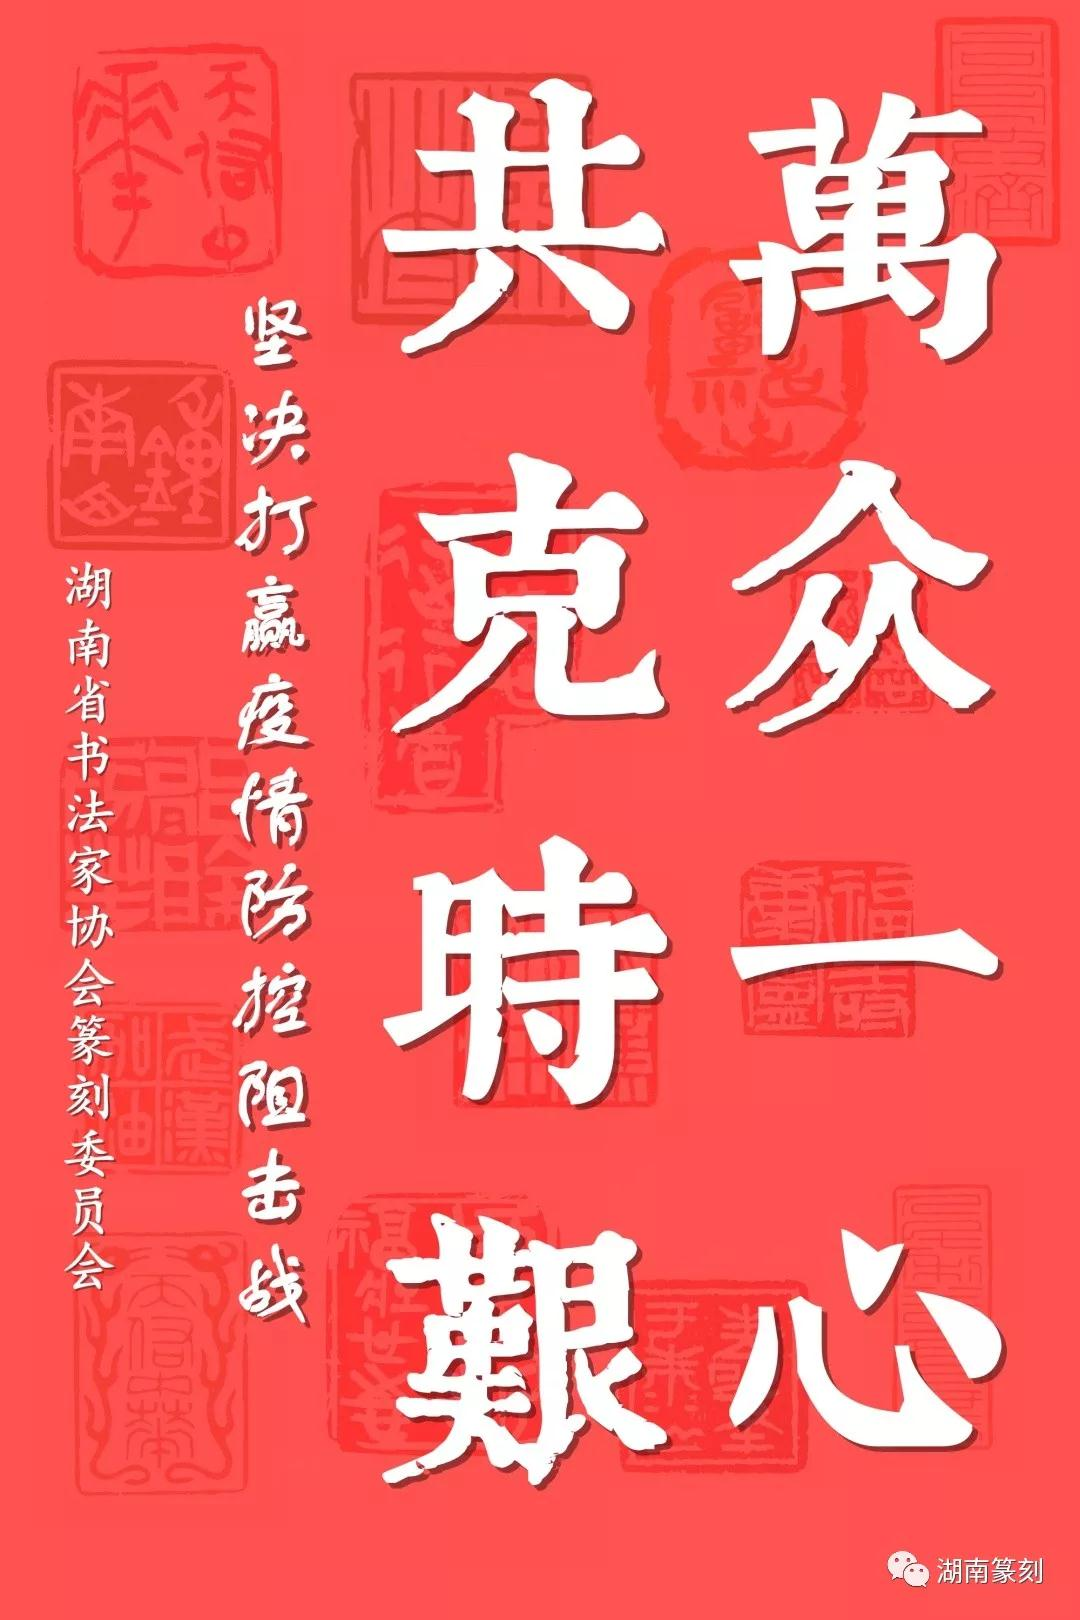 """<span style='font-style:none;font-weight:bold;text-decoration:none'>省书协篆刻委员会""""万众一心 共克时艰""""书法篆刻</span>"""